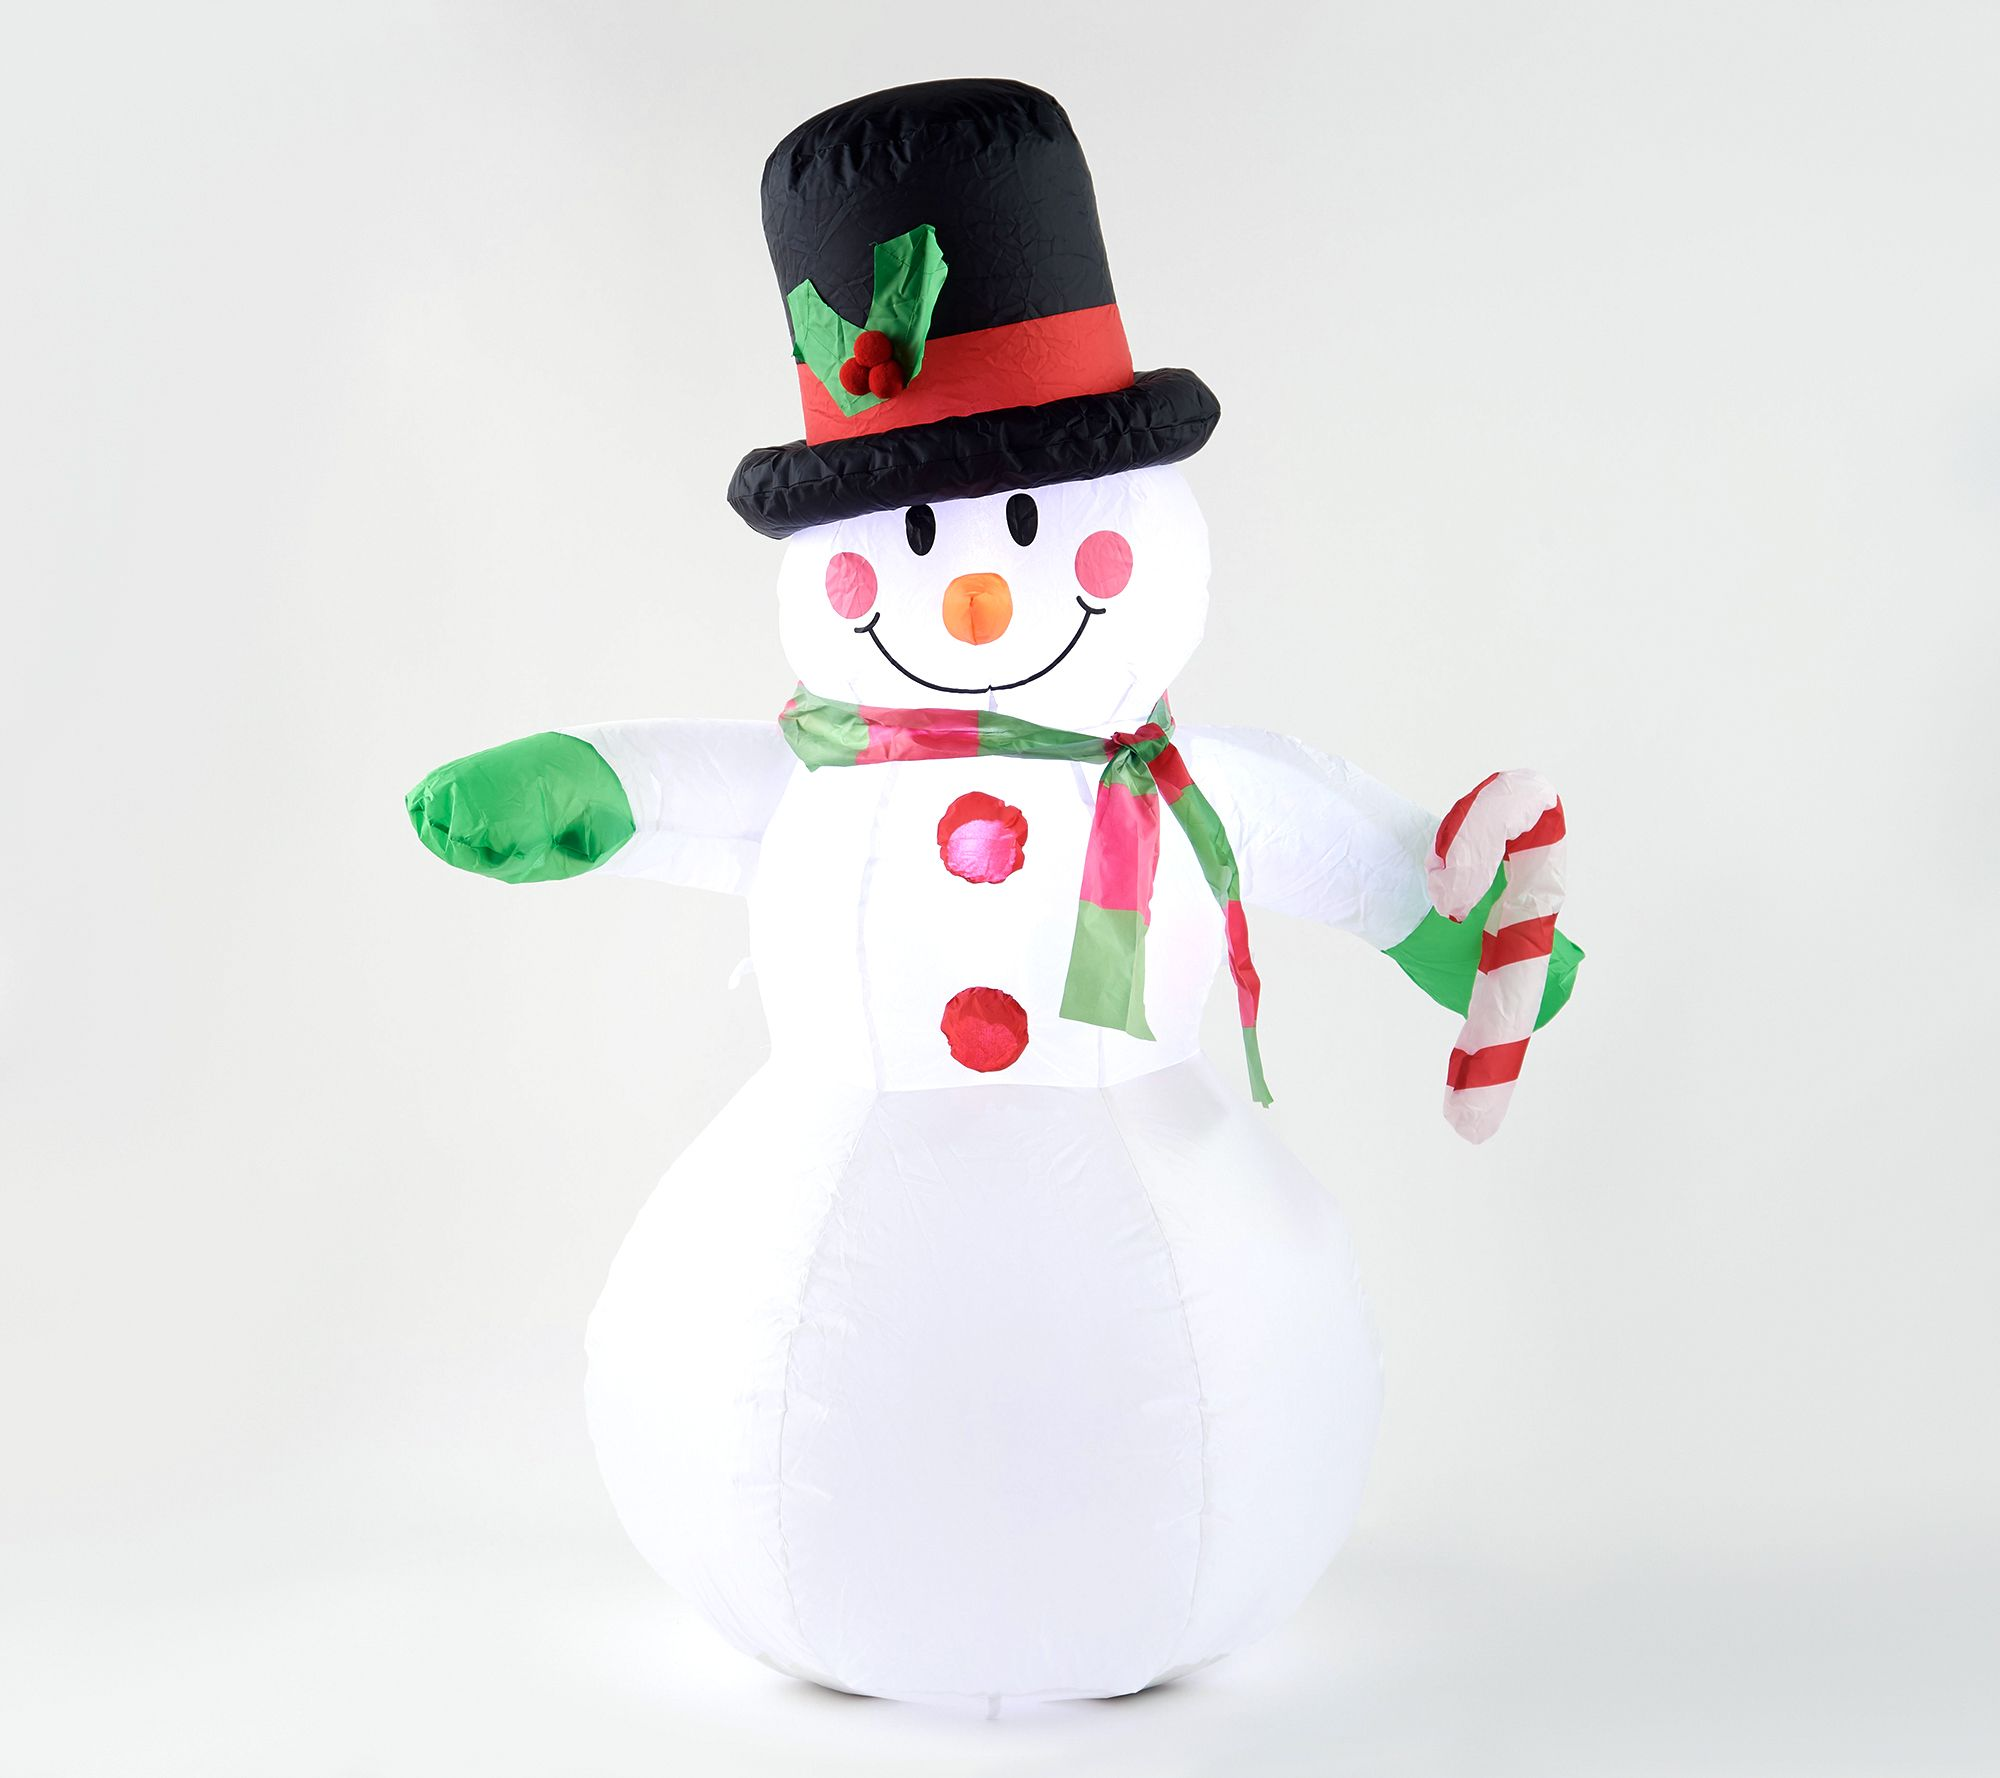 Illuminated inflatable snowman